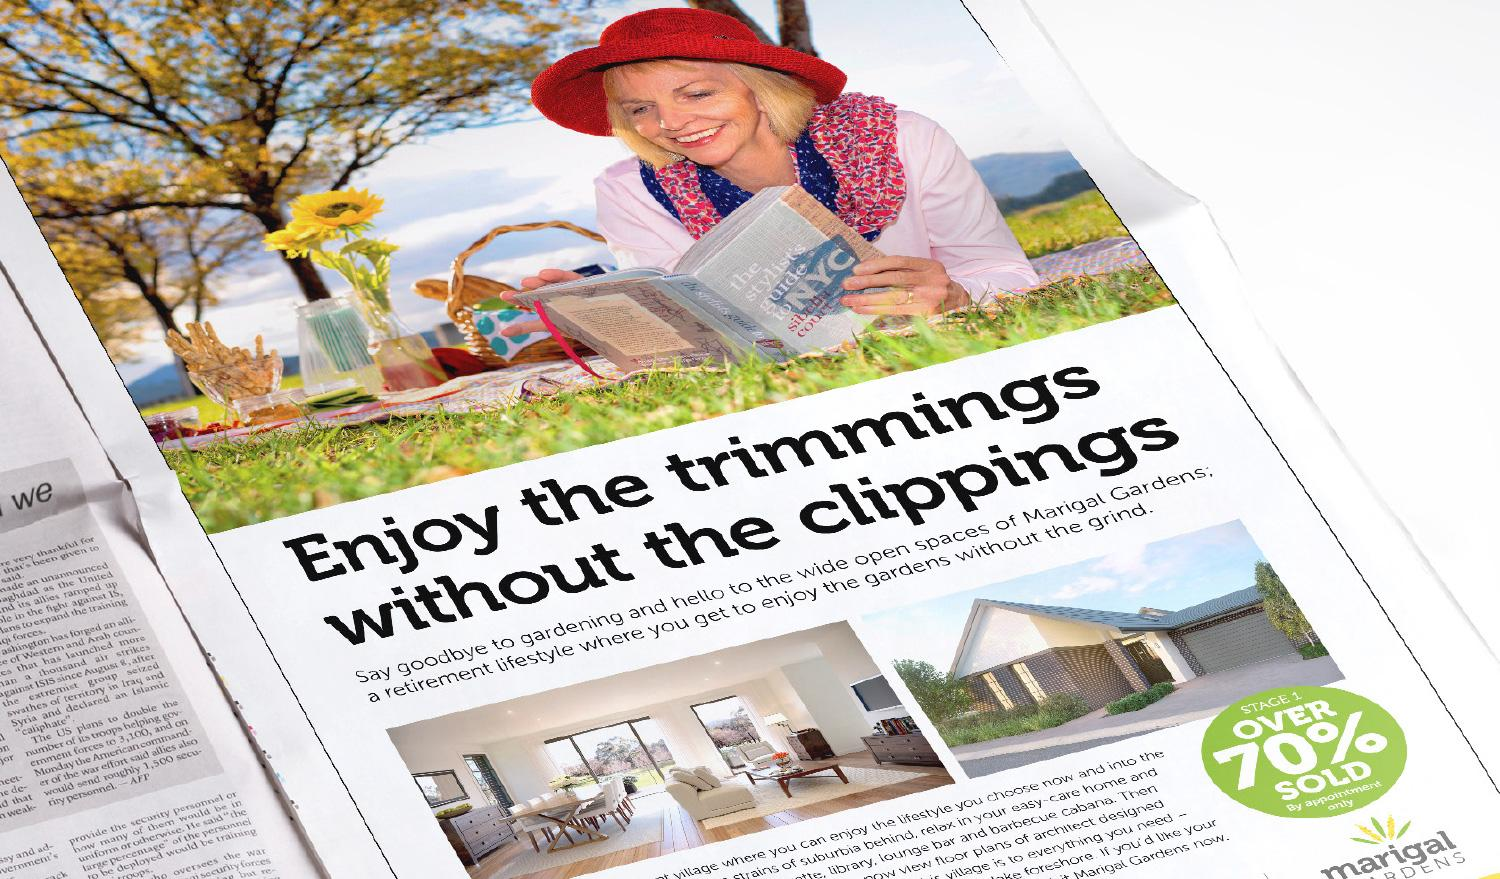 Marigal Gardens – Enjoy the trimmings without the clippings press ad